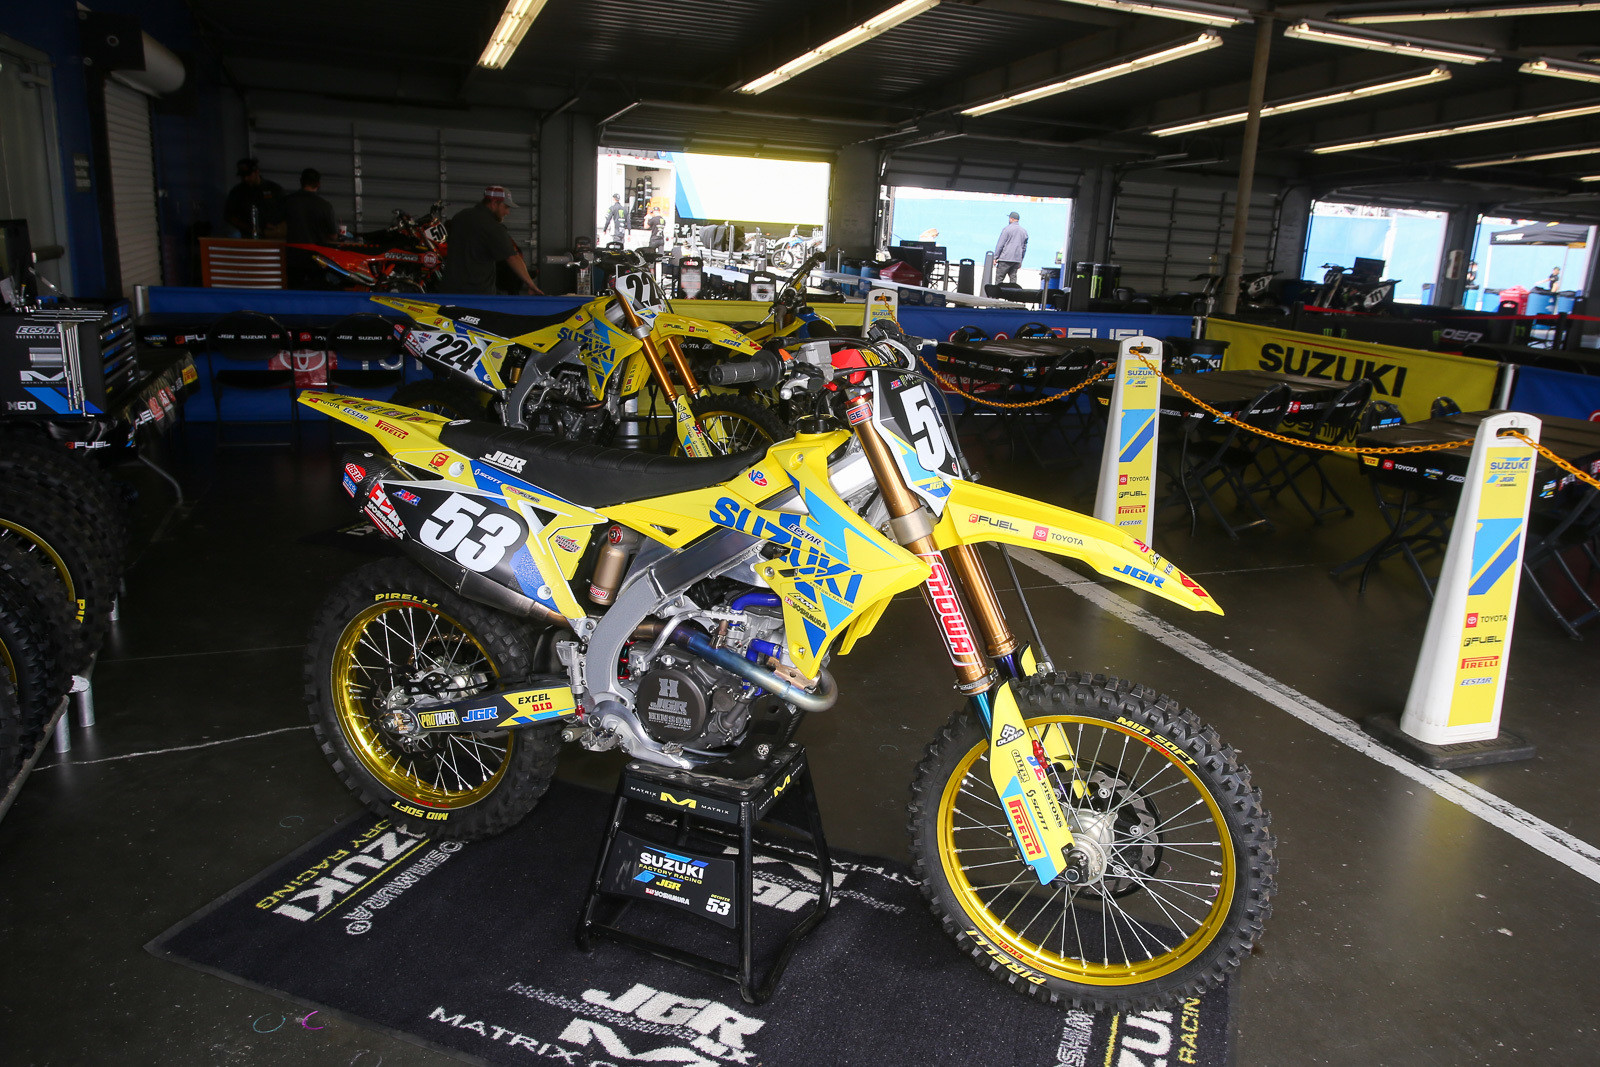 Charles Lefrancois (224) recently won the UK Arenacross title, and he'll join the JGRMX/Yoshimura/Suzuki Factory Racing squad for the next few races to fill in on the 450 side.